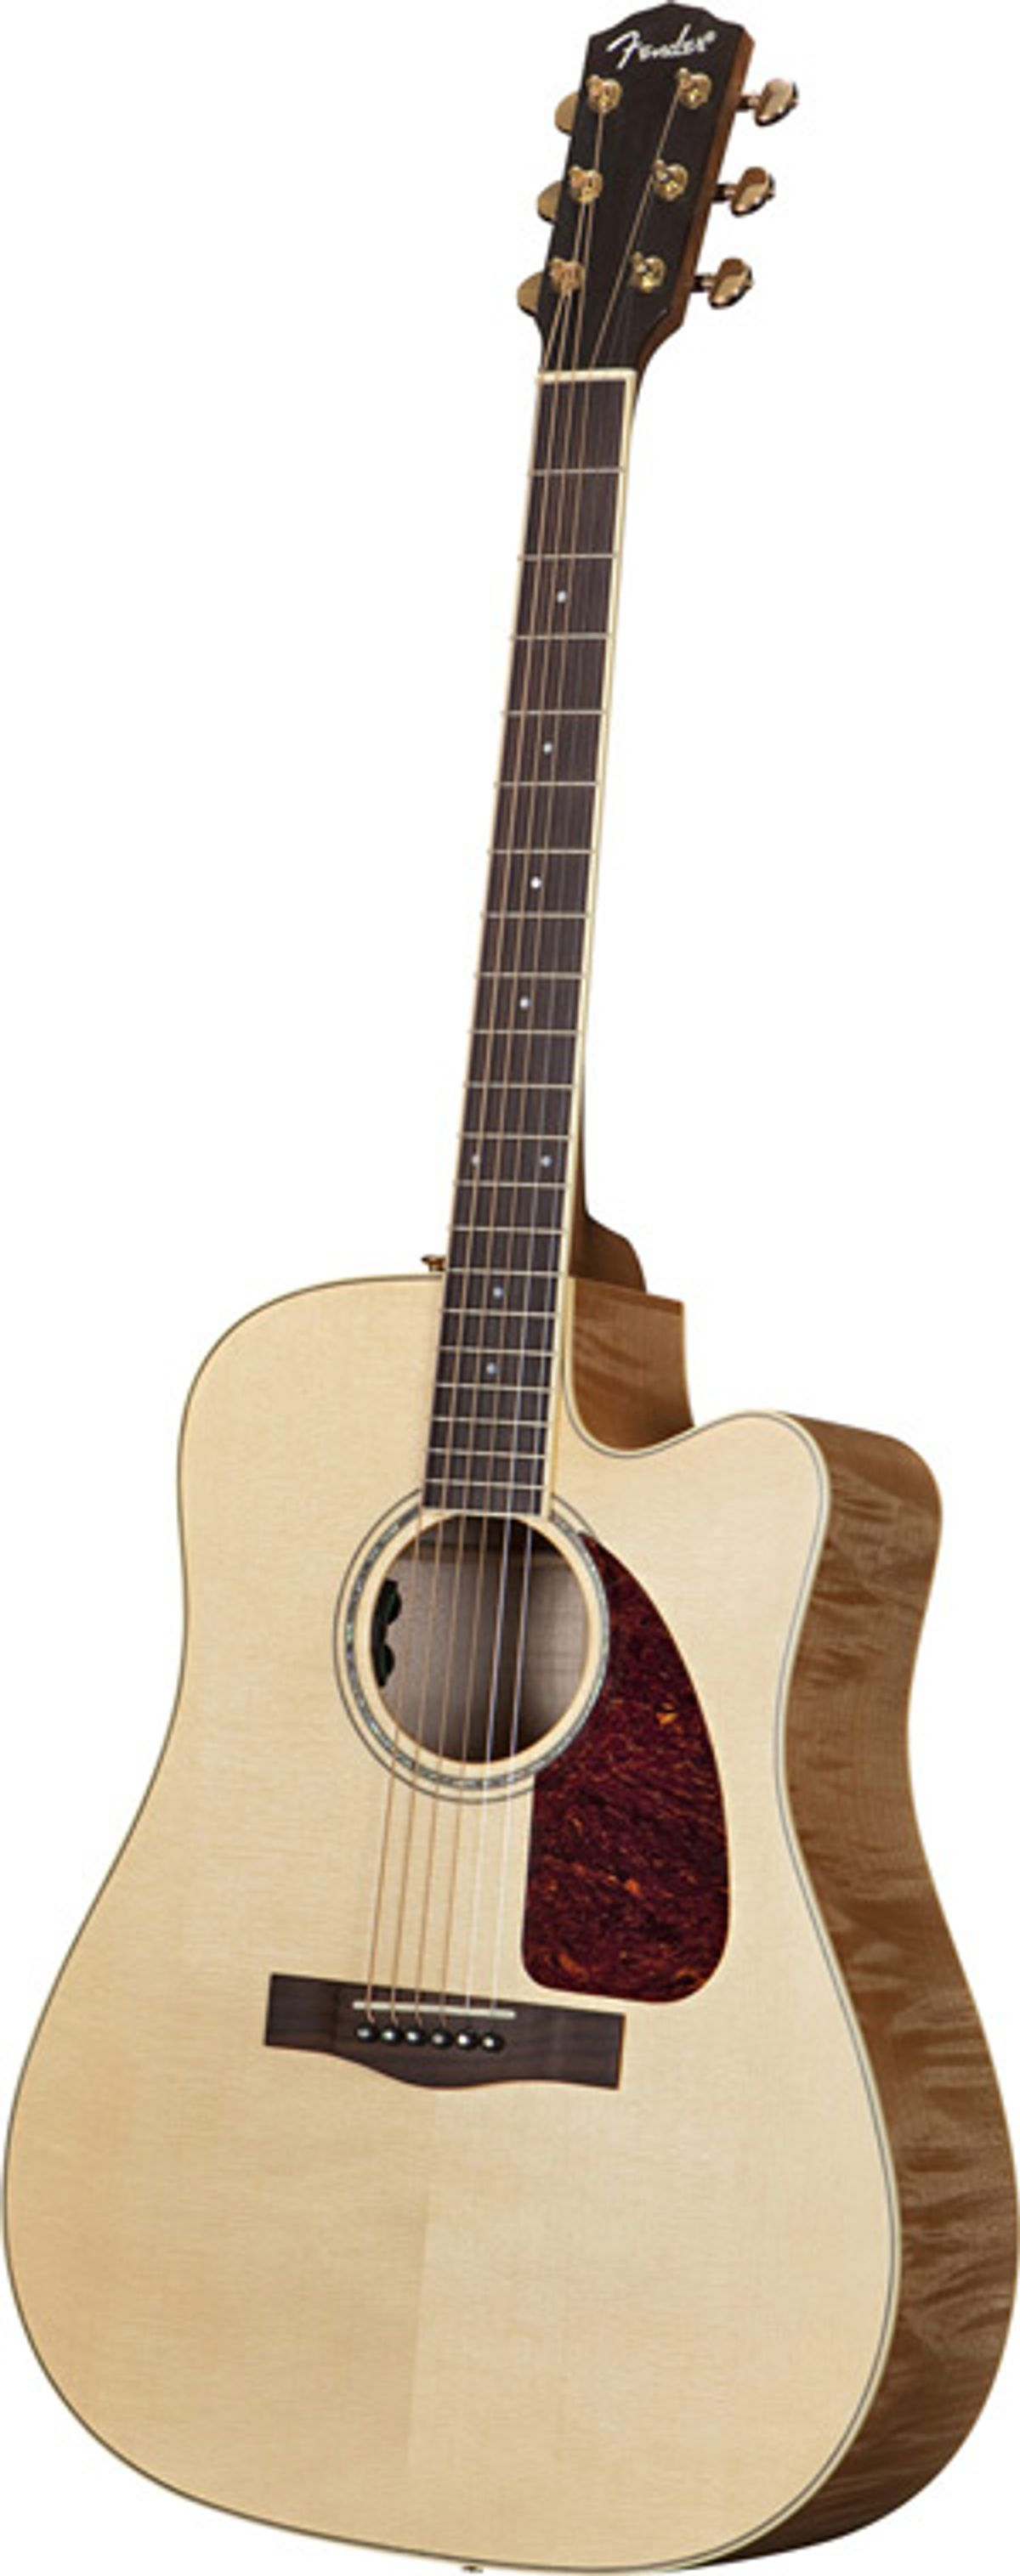 Fender Introduces New Acoustics, Including USA Select 1